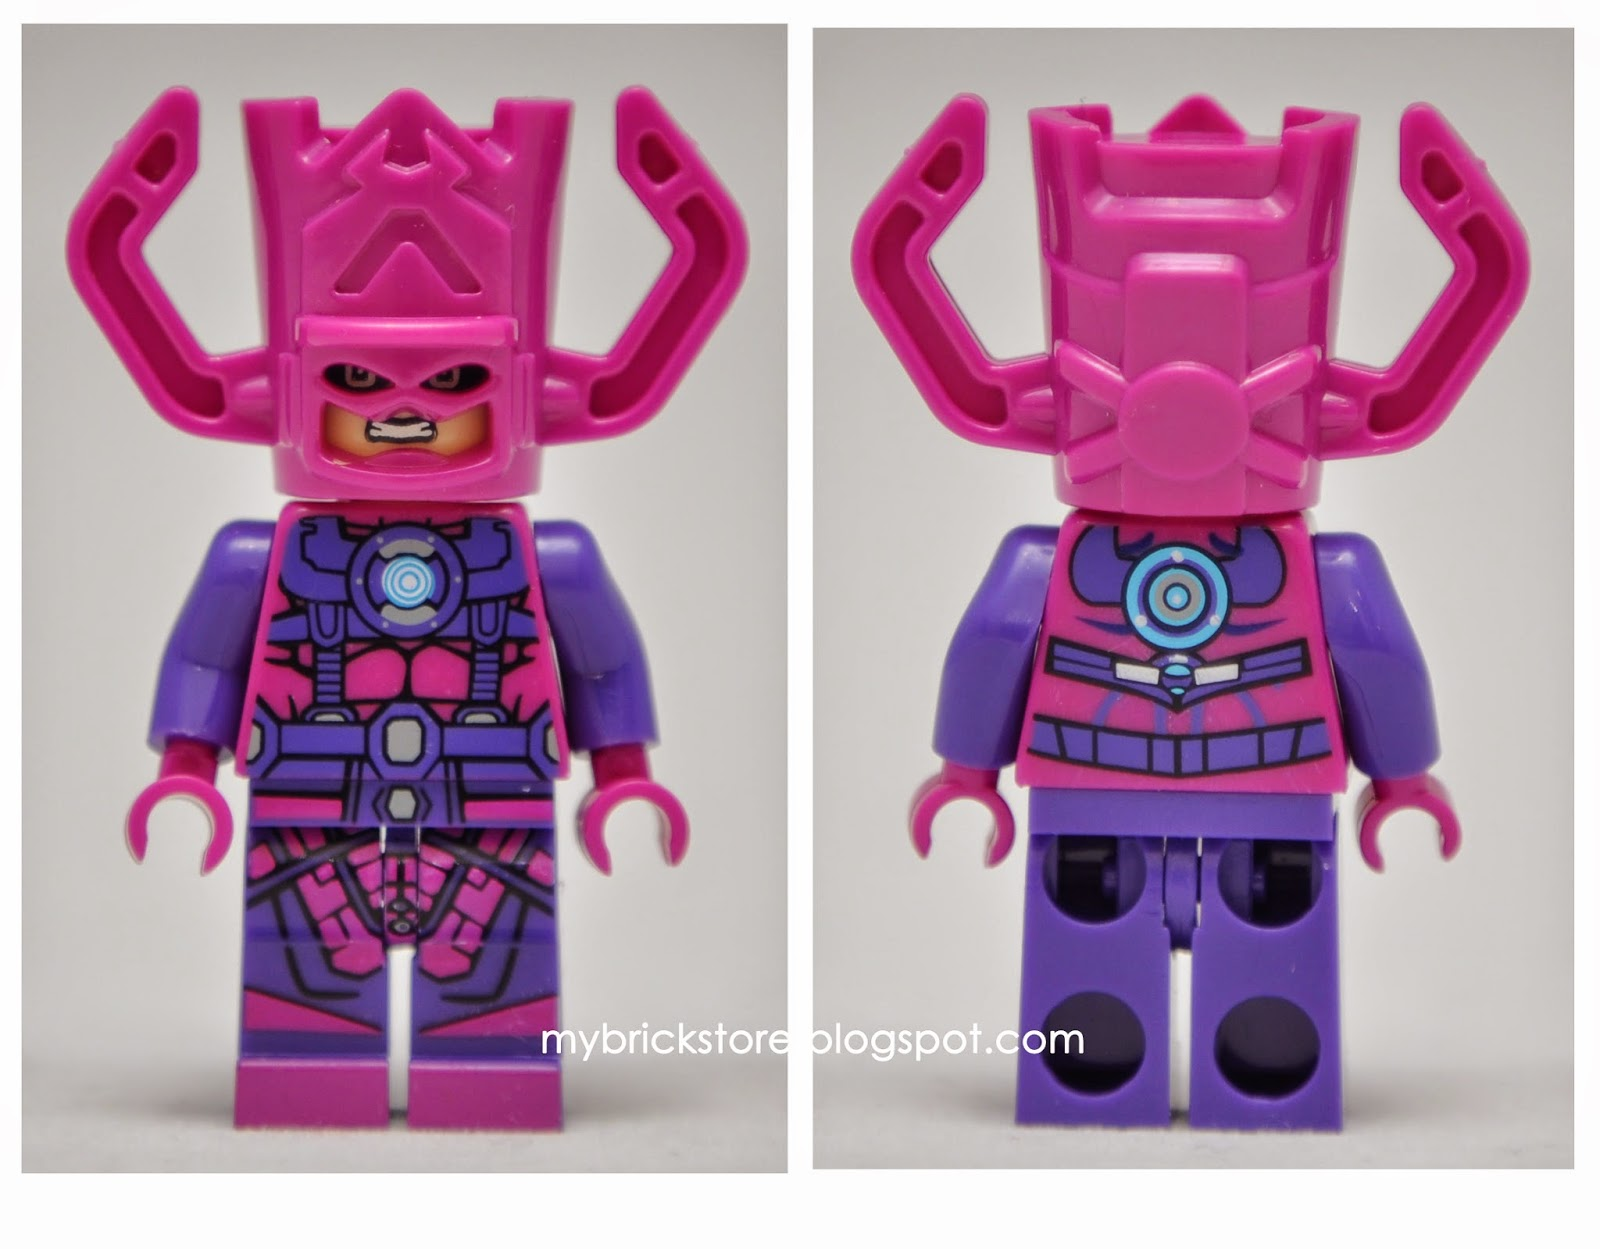 Lego Galactus Galactus - I think this is the